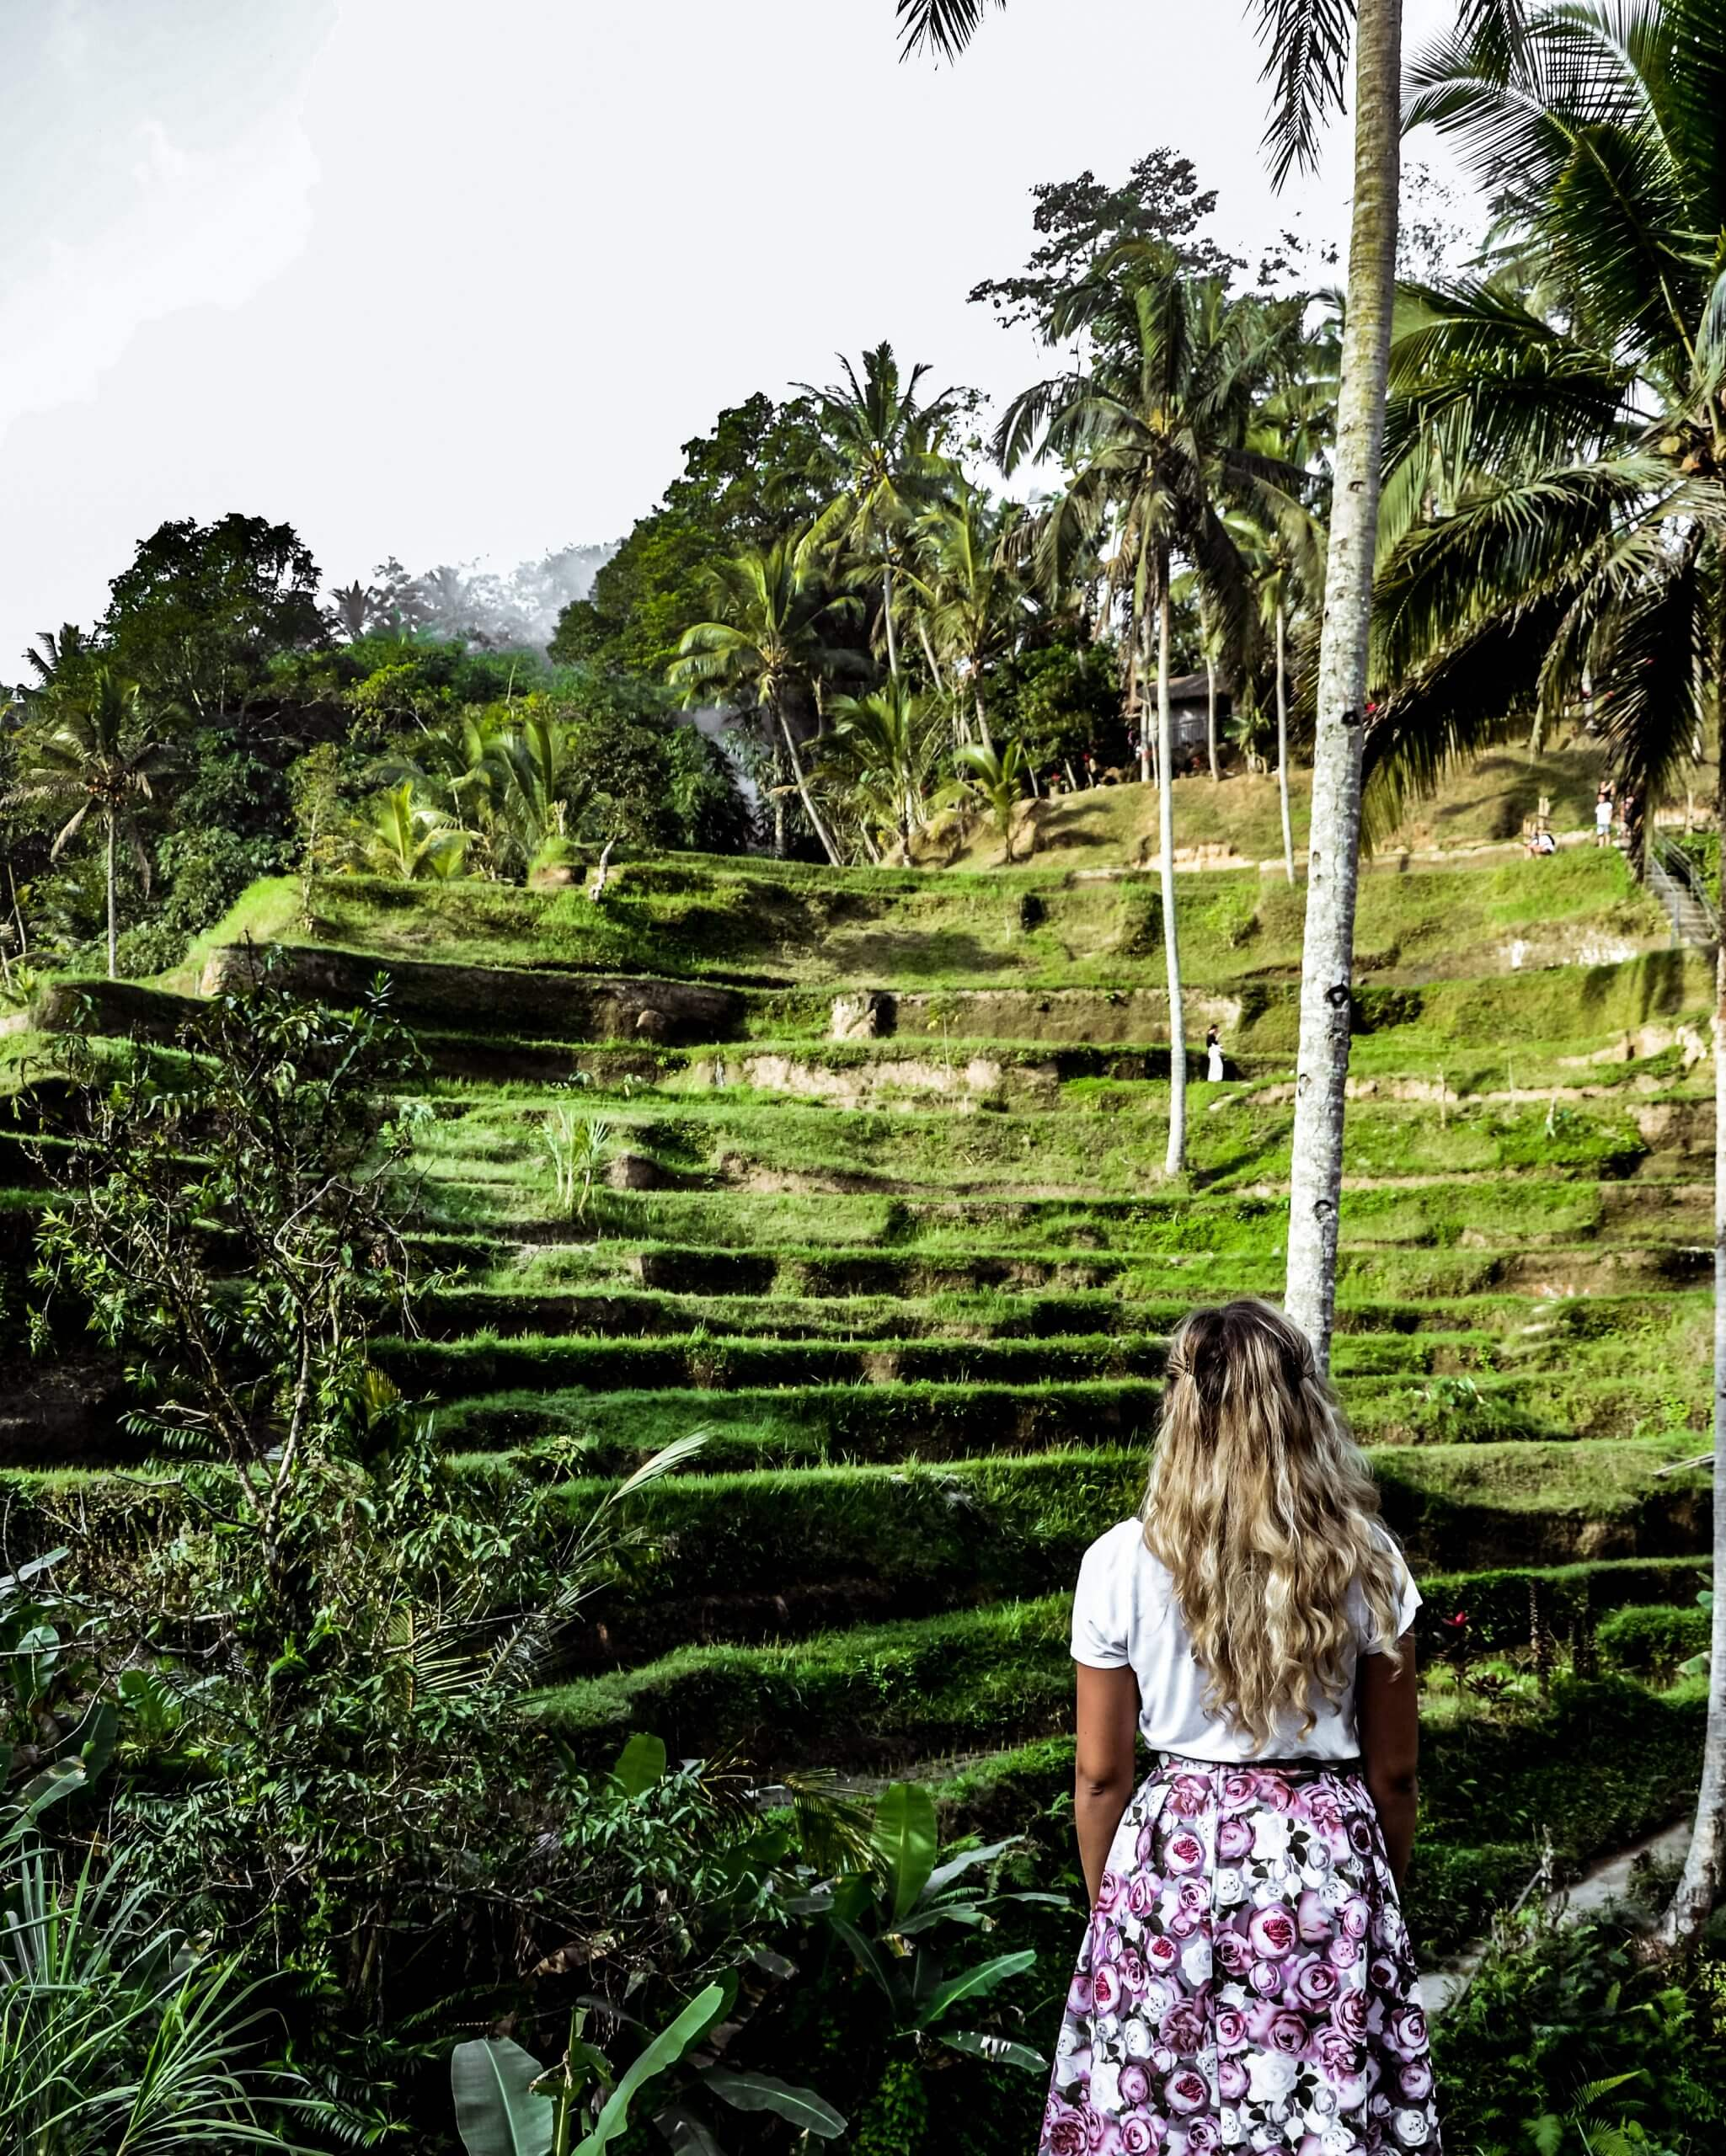 Chane enjoying the view of theTegallalang Rice Terrace in Bali